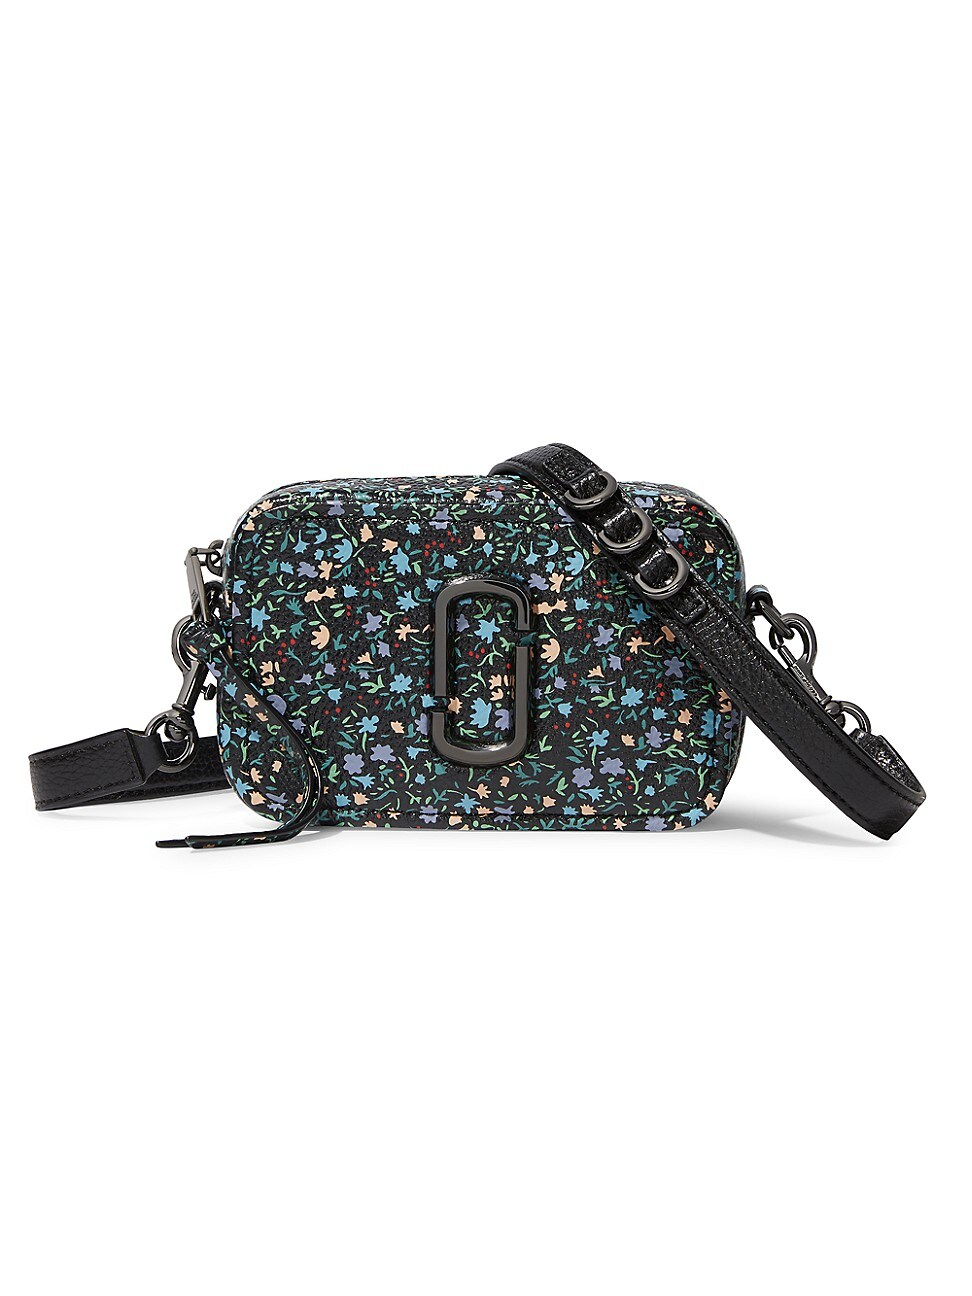 The Marc Jacobs WOMEN'S THE SOFTSHOT FLORAL LEATHER CAMERA BAG